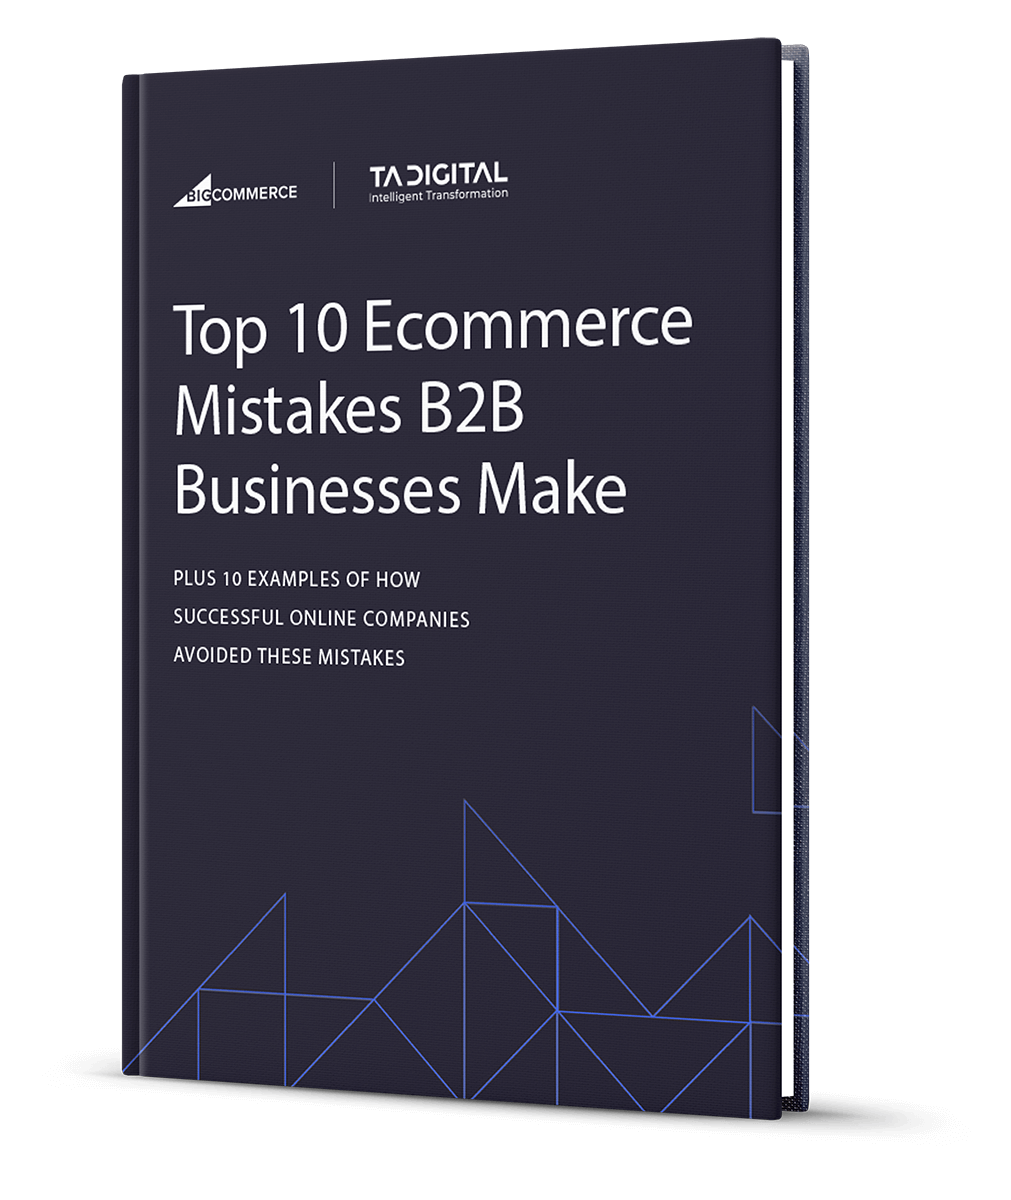 Top 10 Ecommerce Mistakes B2B Businesses Make ebook